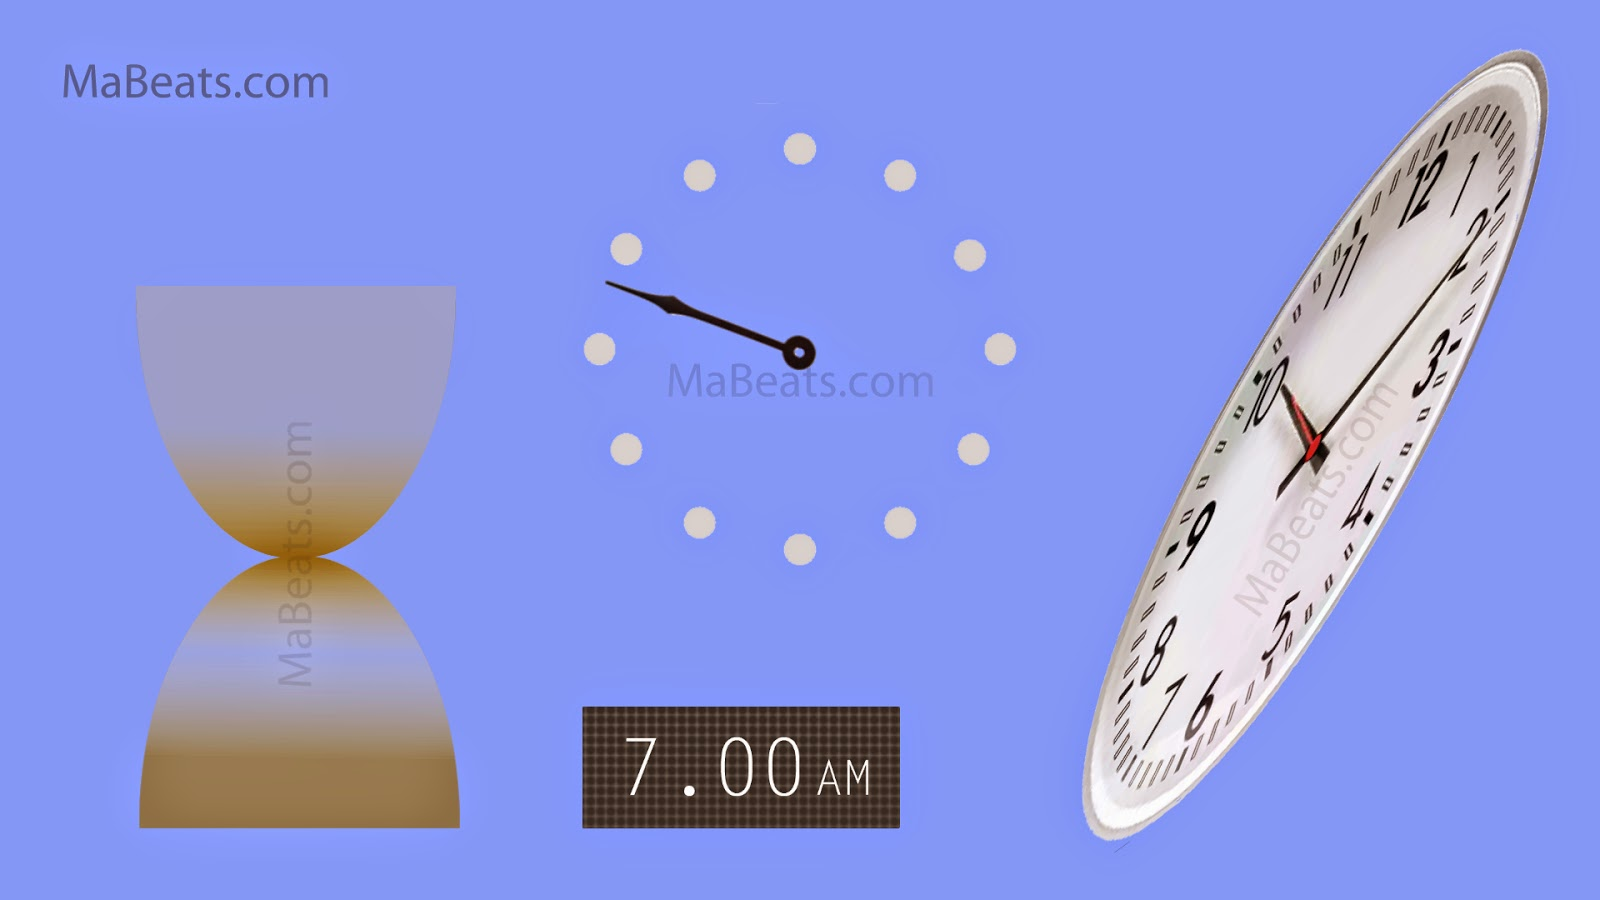 How often do you see the Time - forget time for some time, clock, digital clock, sand clock, blue background